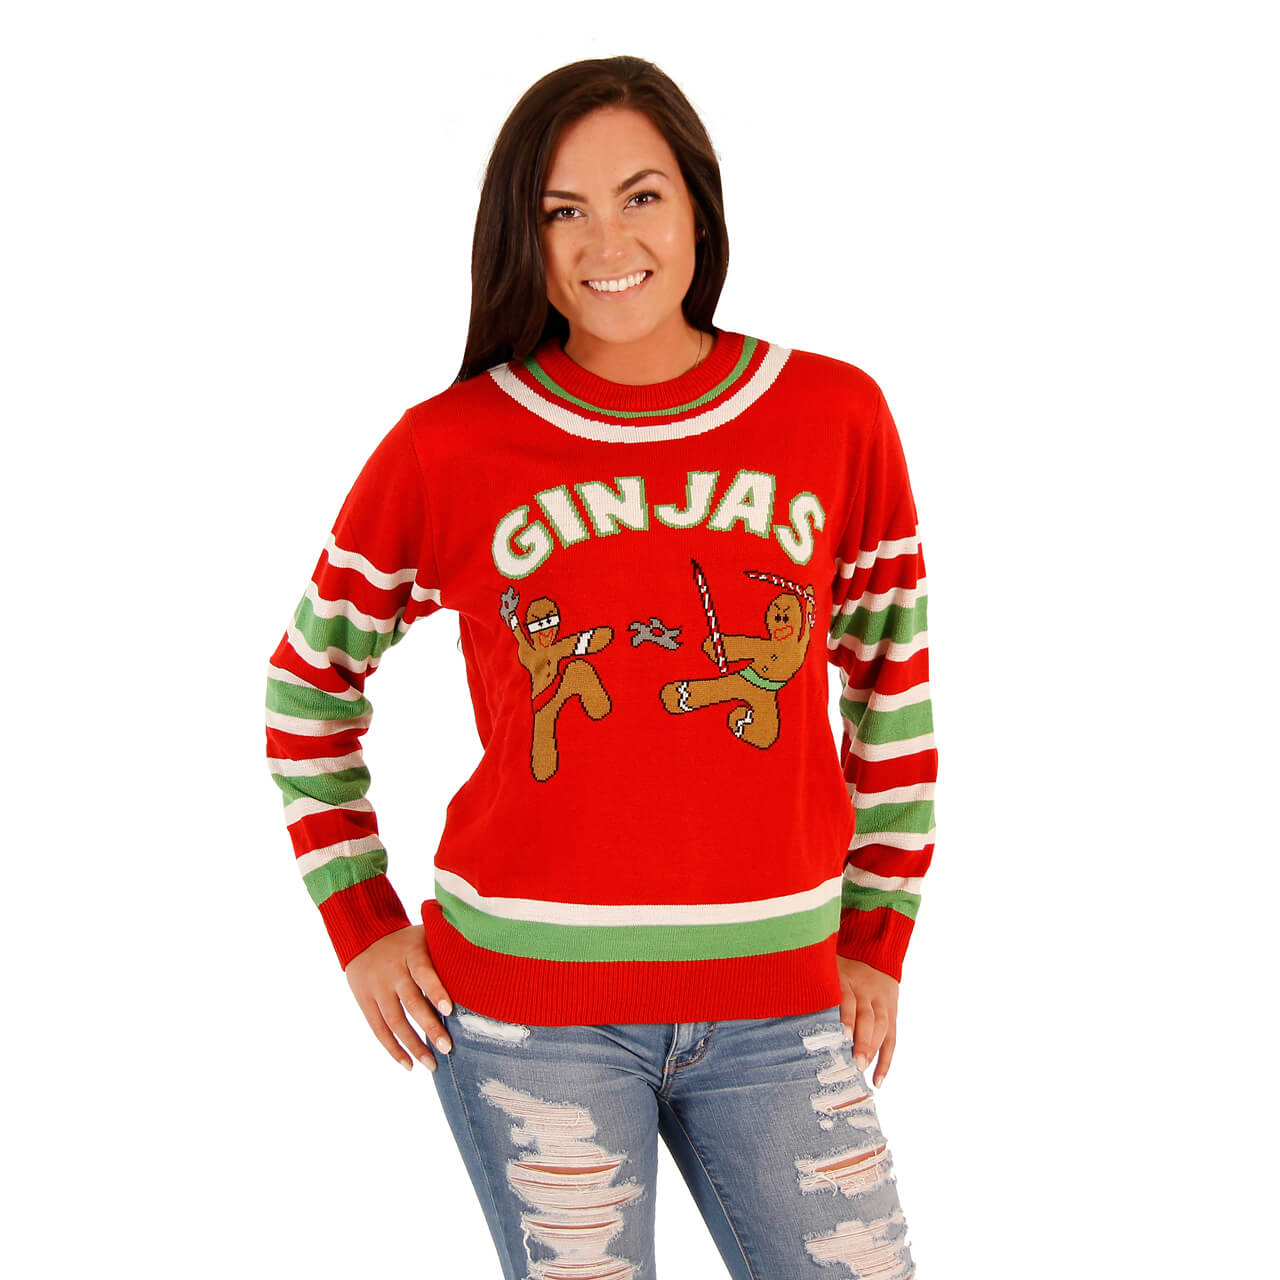 Women\u0027s Fighting Ginjas Gingerbread Ninjas Funny Christmas Ugly Christmas  Sweater